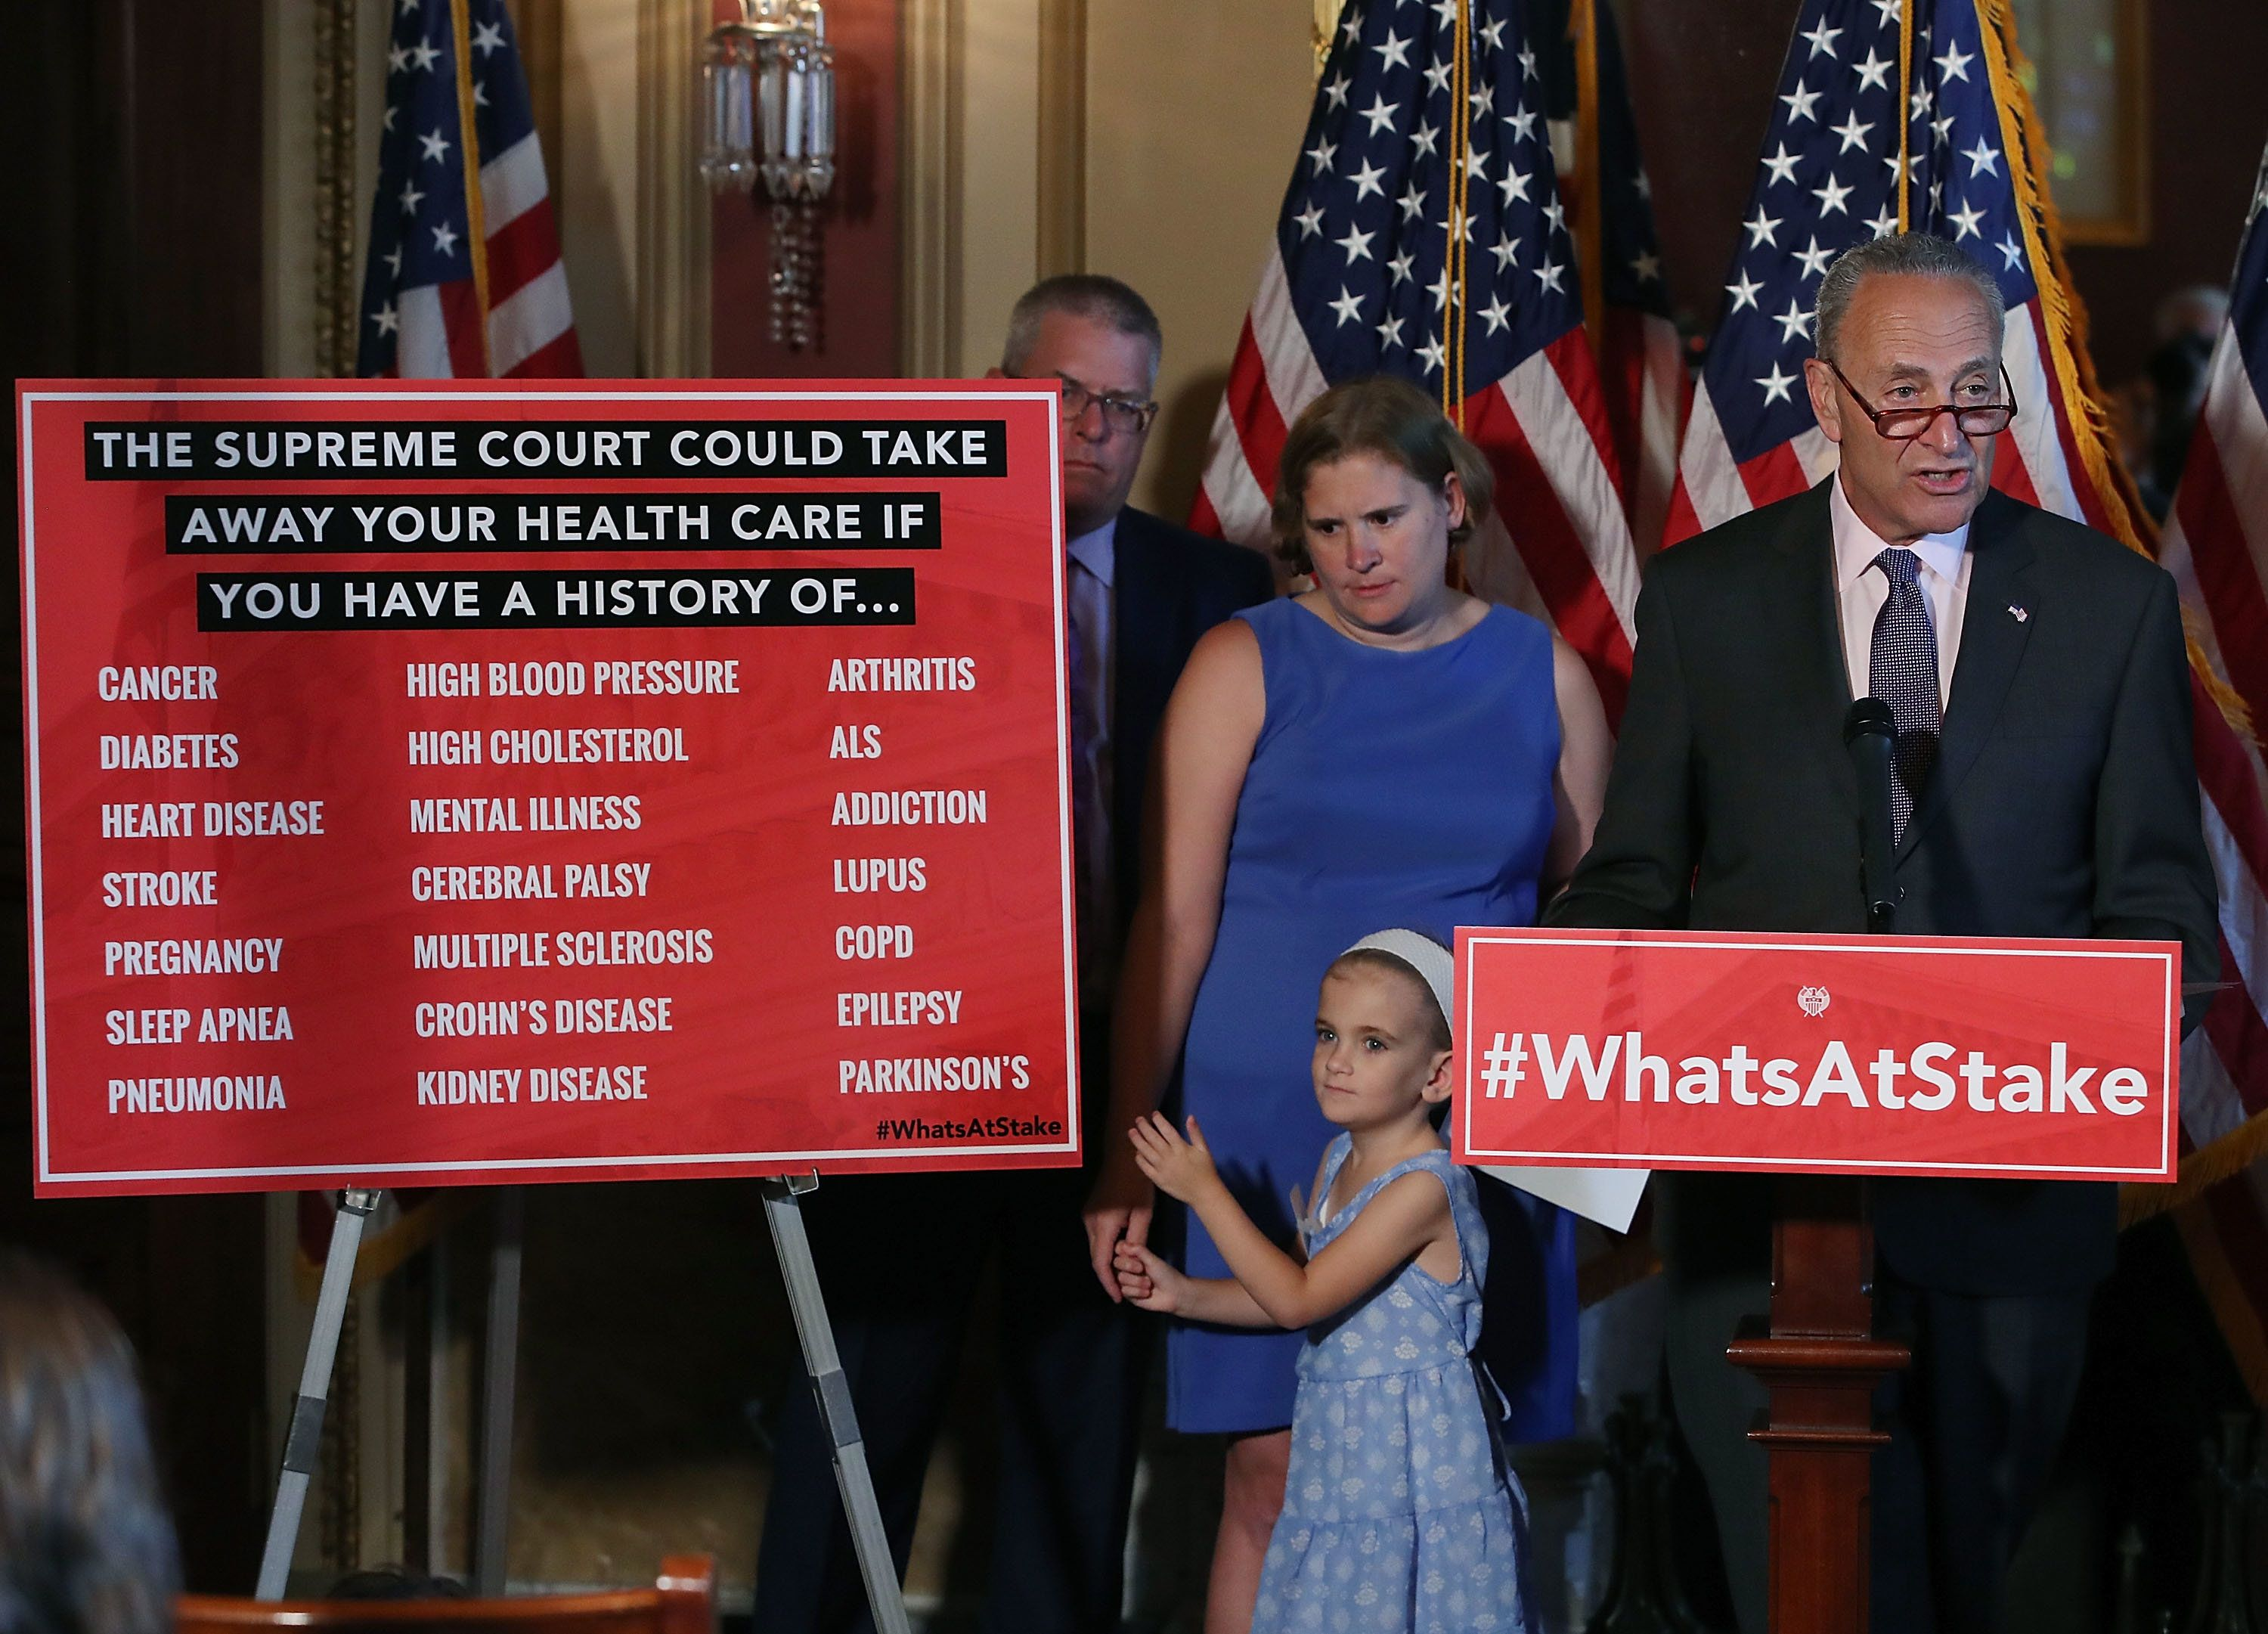 Senate Minority Leader Chuck Schumer (D-N.Y.) and other Democrats are going to be calling attention to issues like health car